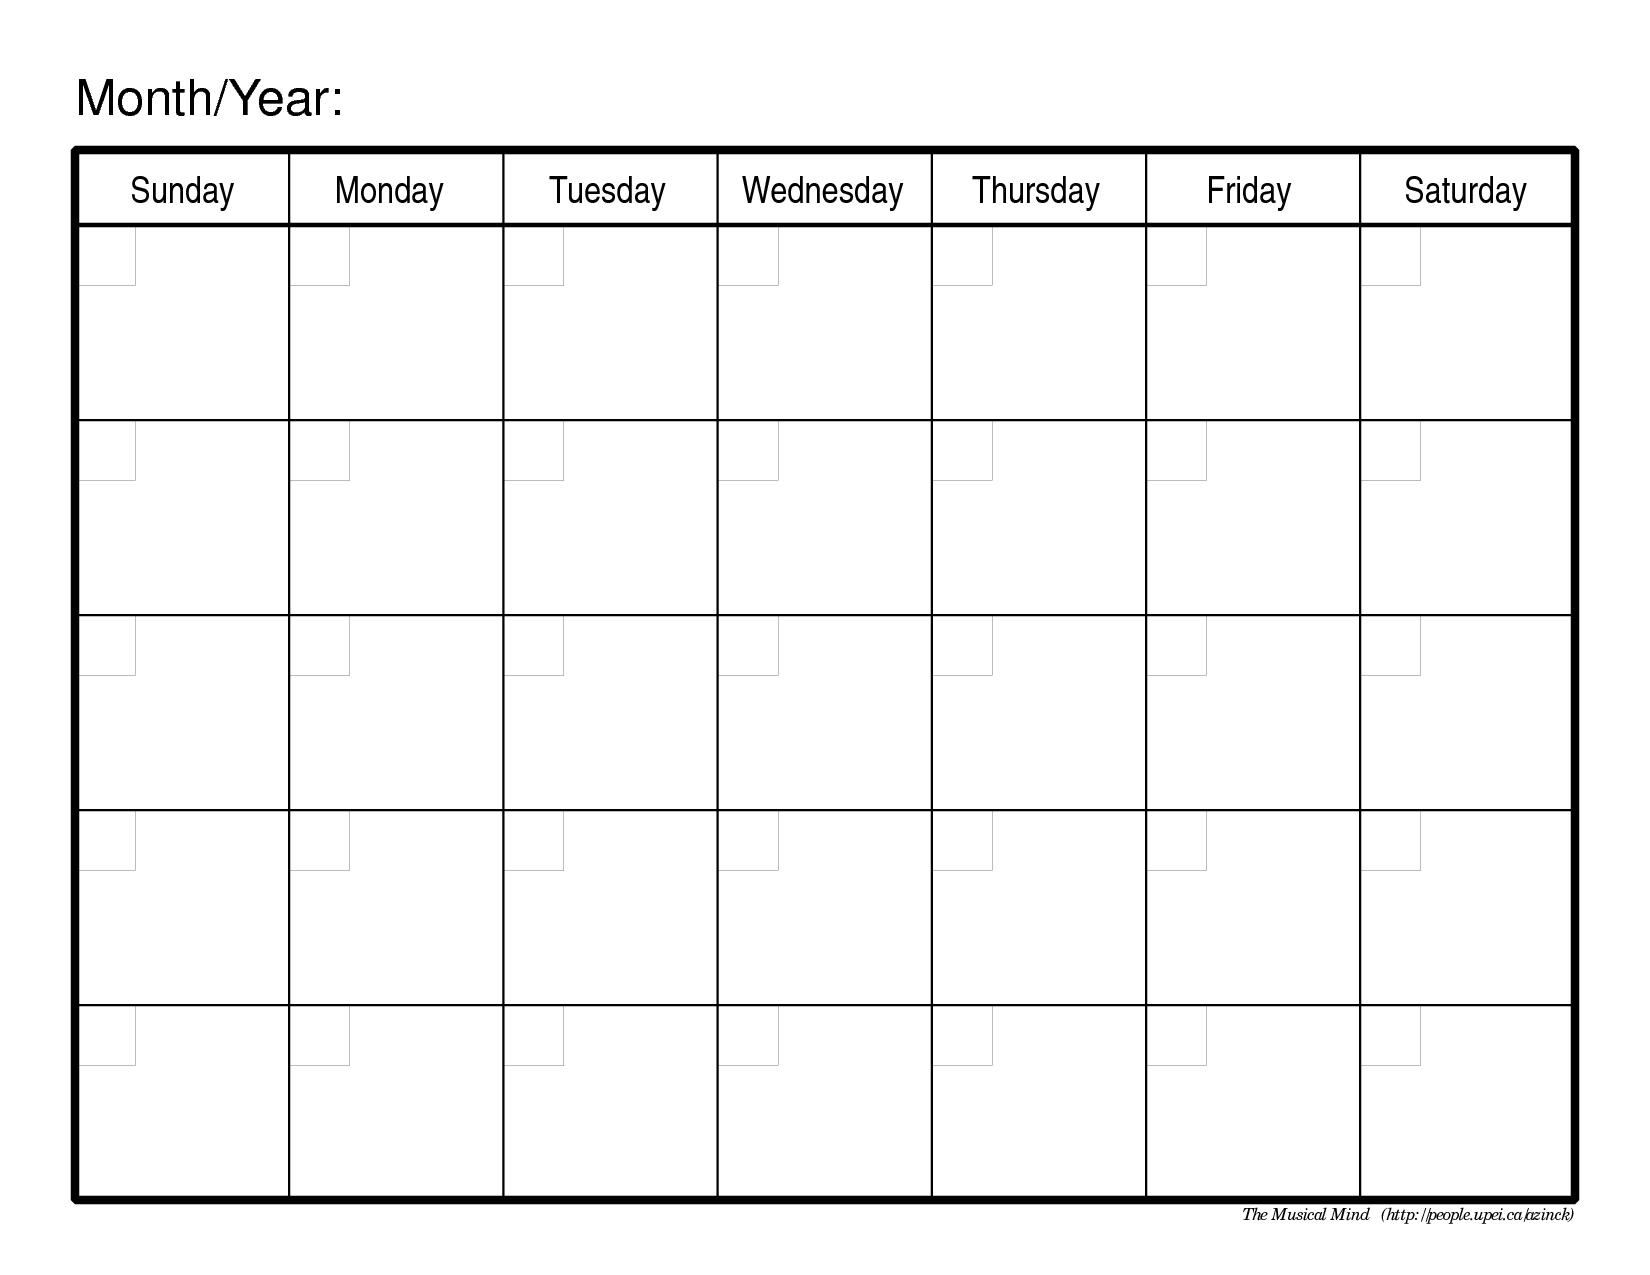 Monthly Calendar Template   Organizing   Monthly Calendar Template with regard to Free Fill In Calendar Templates Month